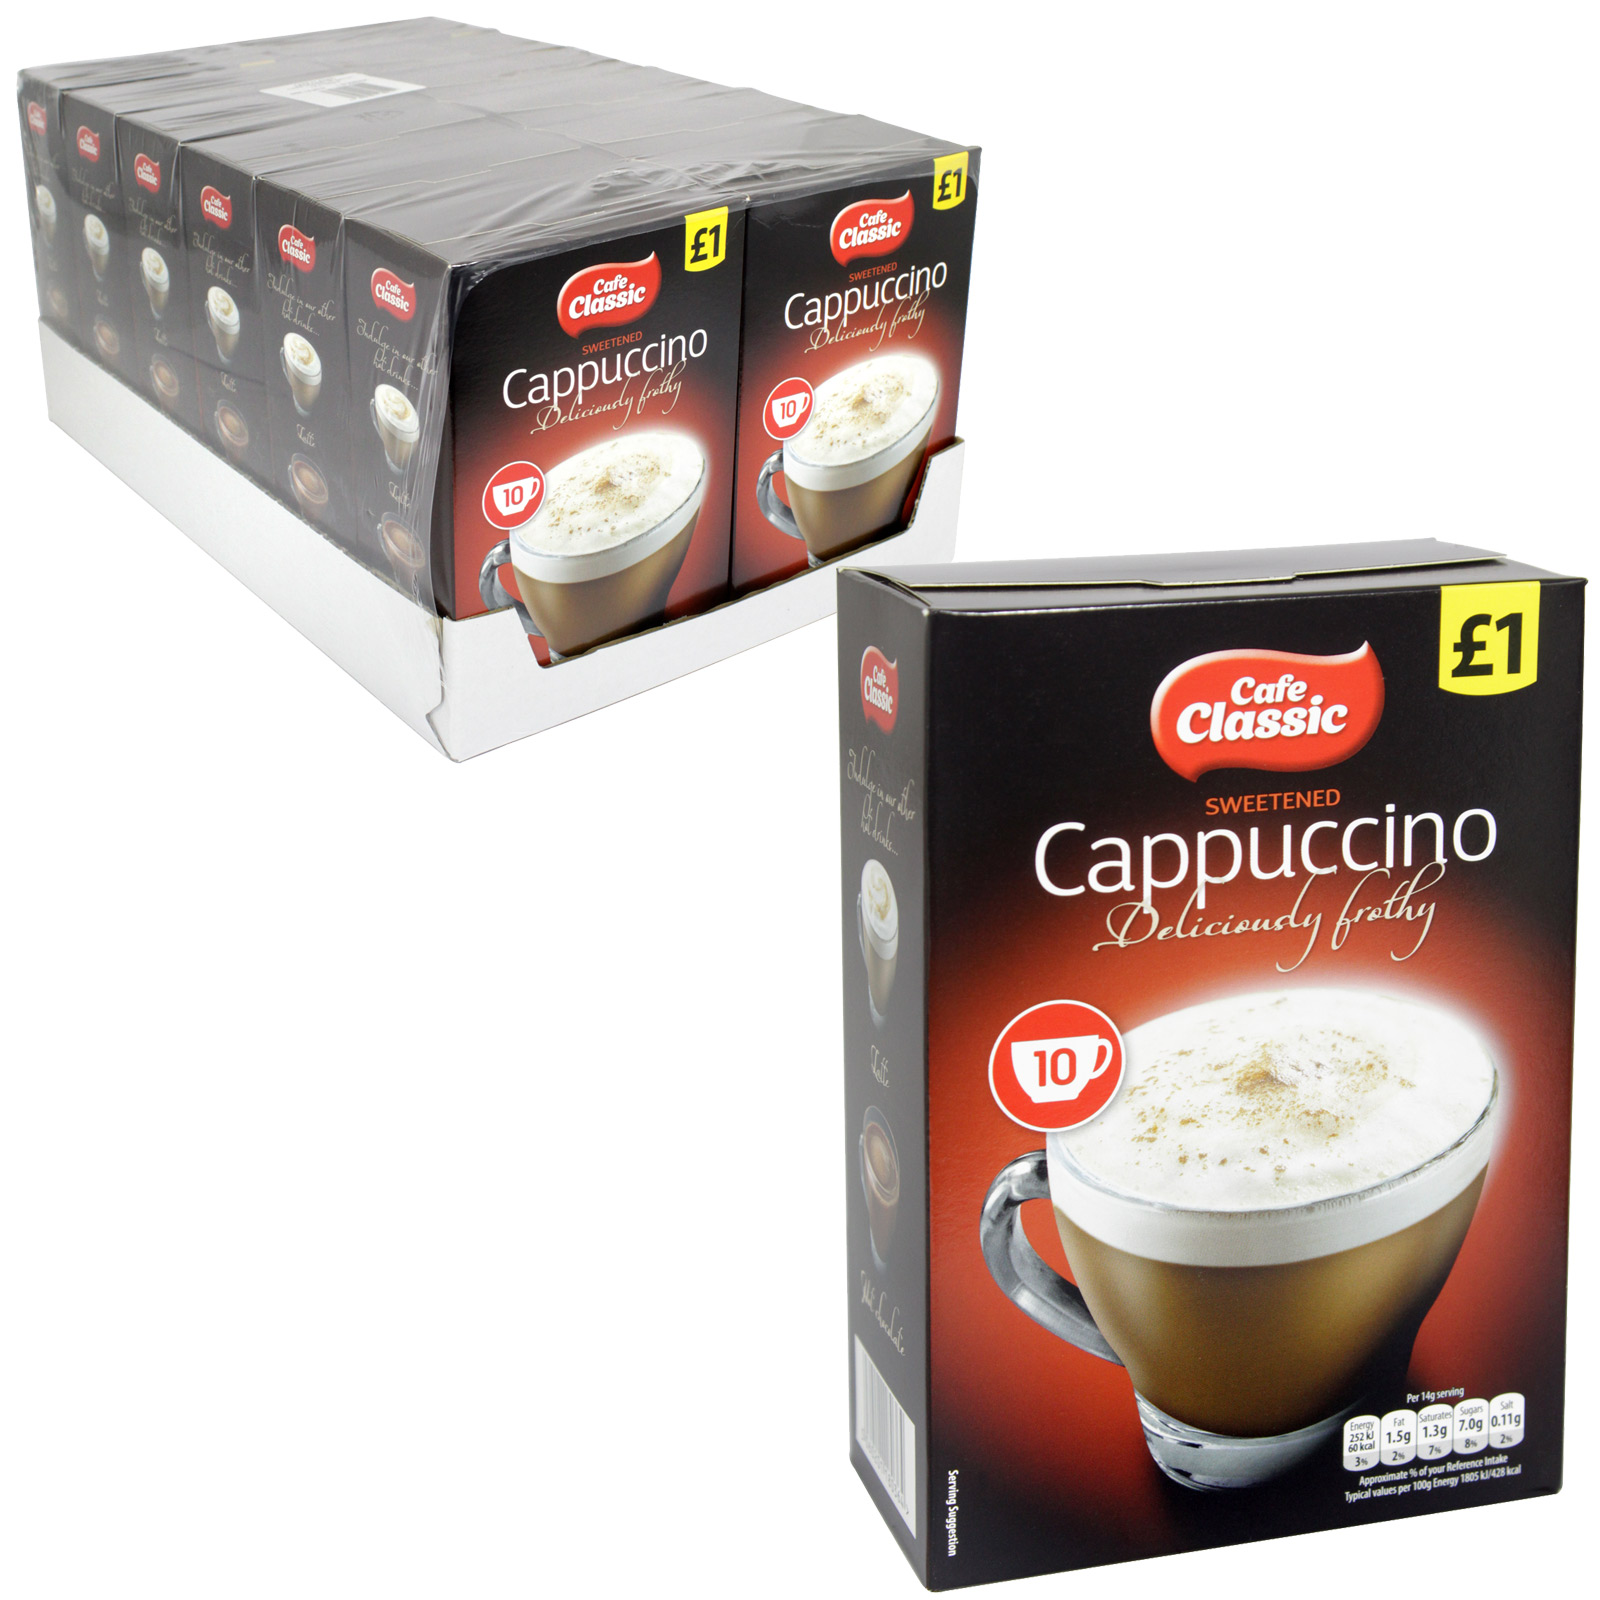 CAFE CLASSIC SWEETENED CAPPUCCINO 10PK PM ?1 X12